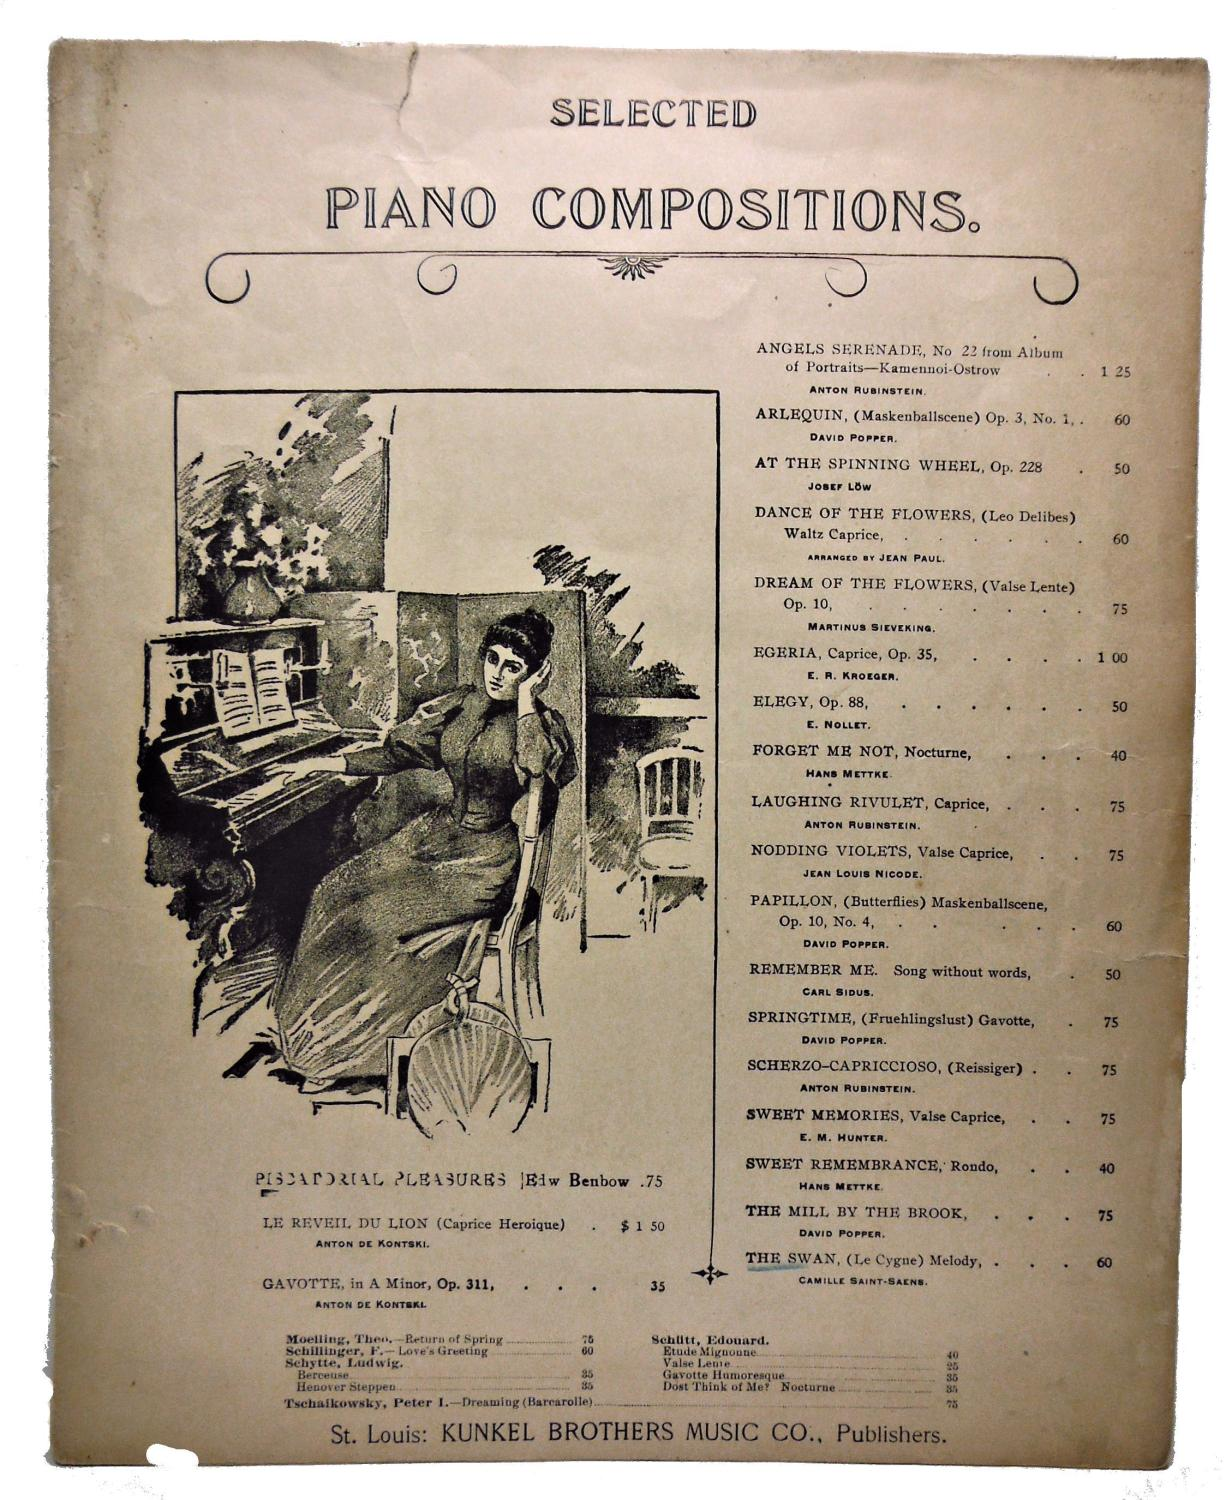 SELECTED PIANO COMPOSITIONS, THE SWAN, (Le